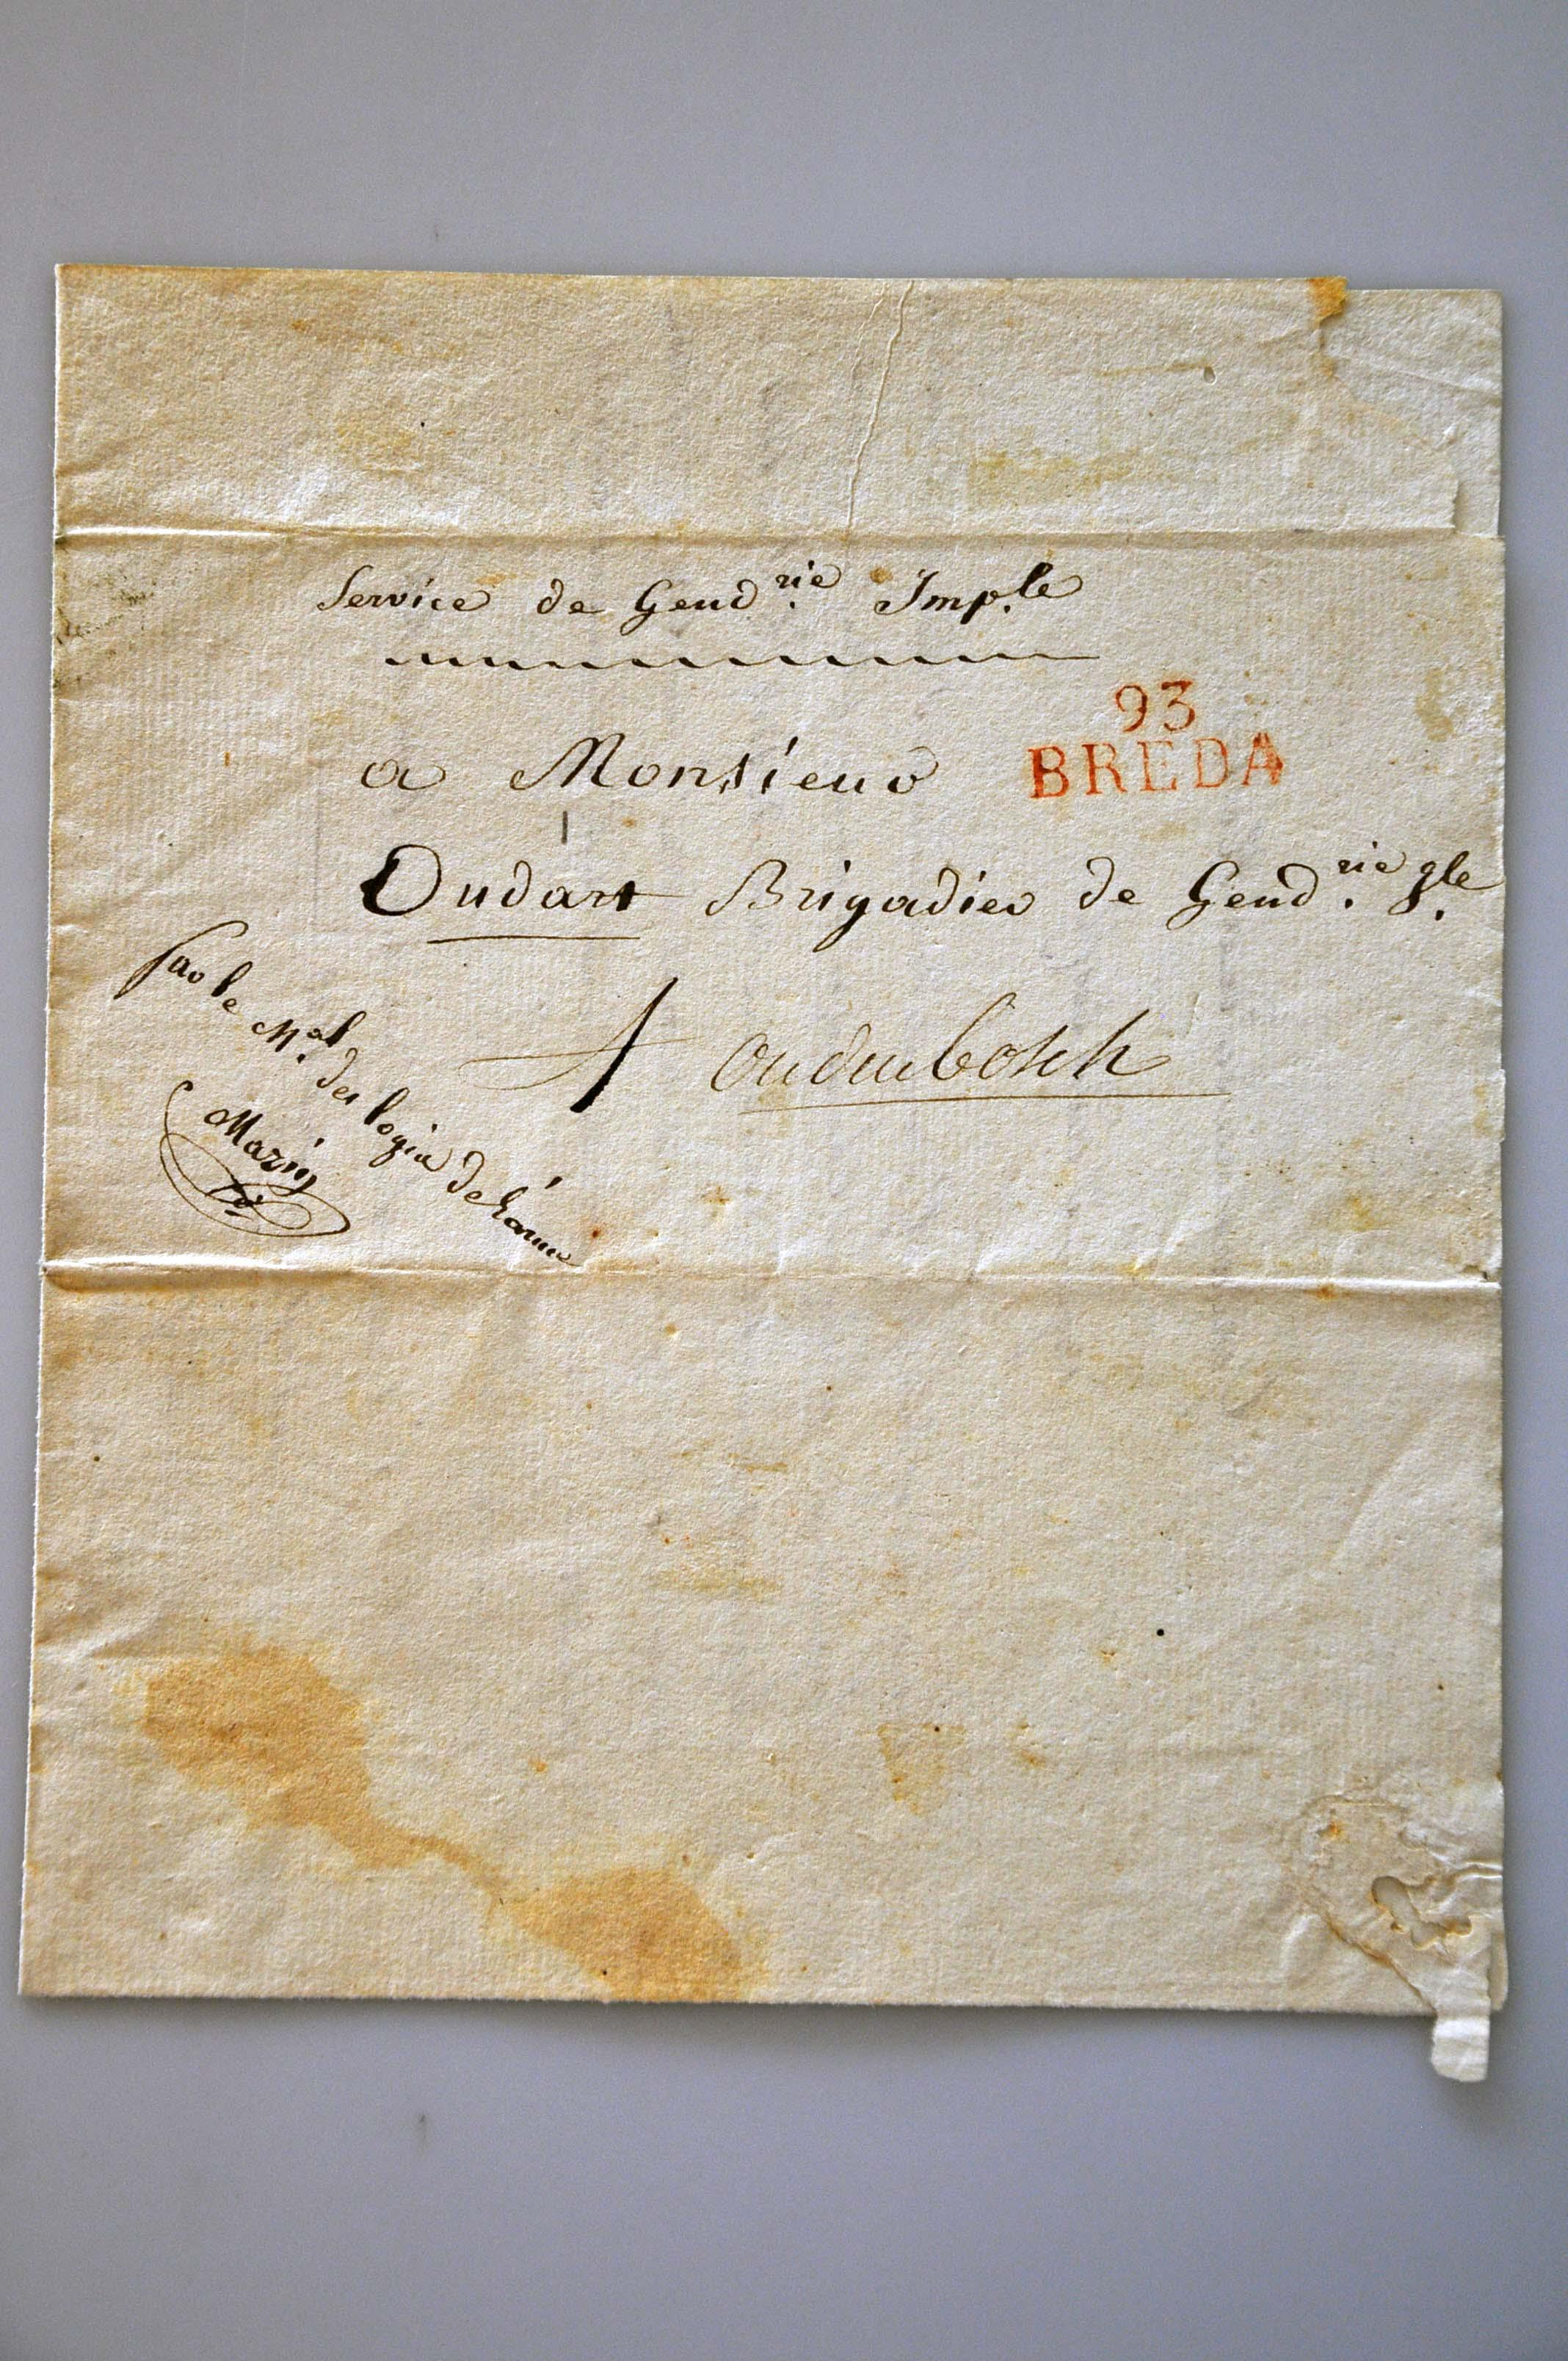 Lot 2720 - Netherlands and former colonies Netherlands -  Corinphila Veilingen Auction 245-246 Day 3 - Netherlands and former colonies - Single lots, Collections and lots, Boxes and literature